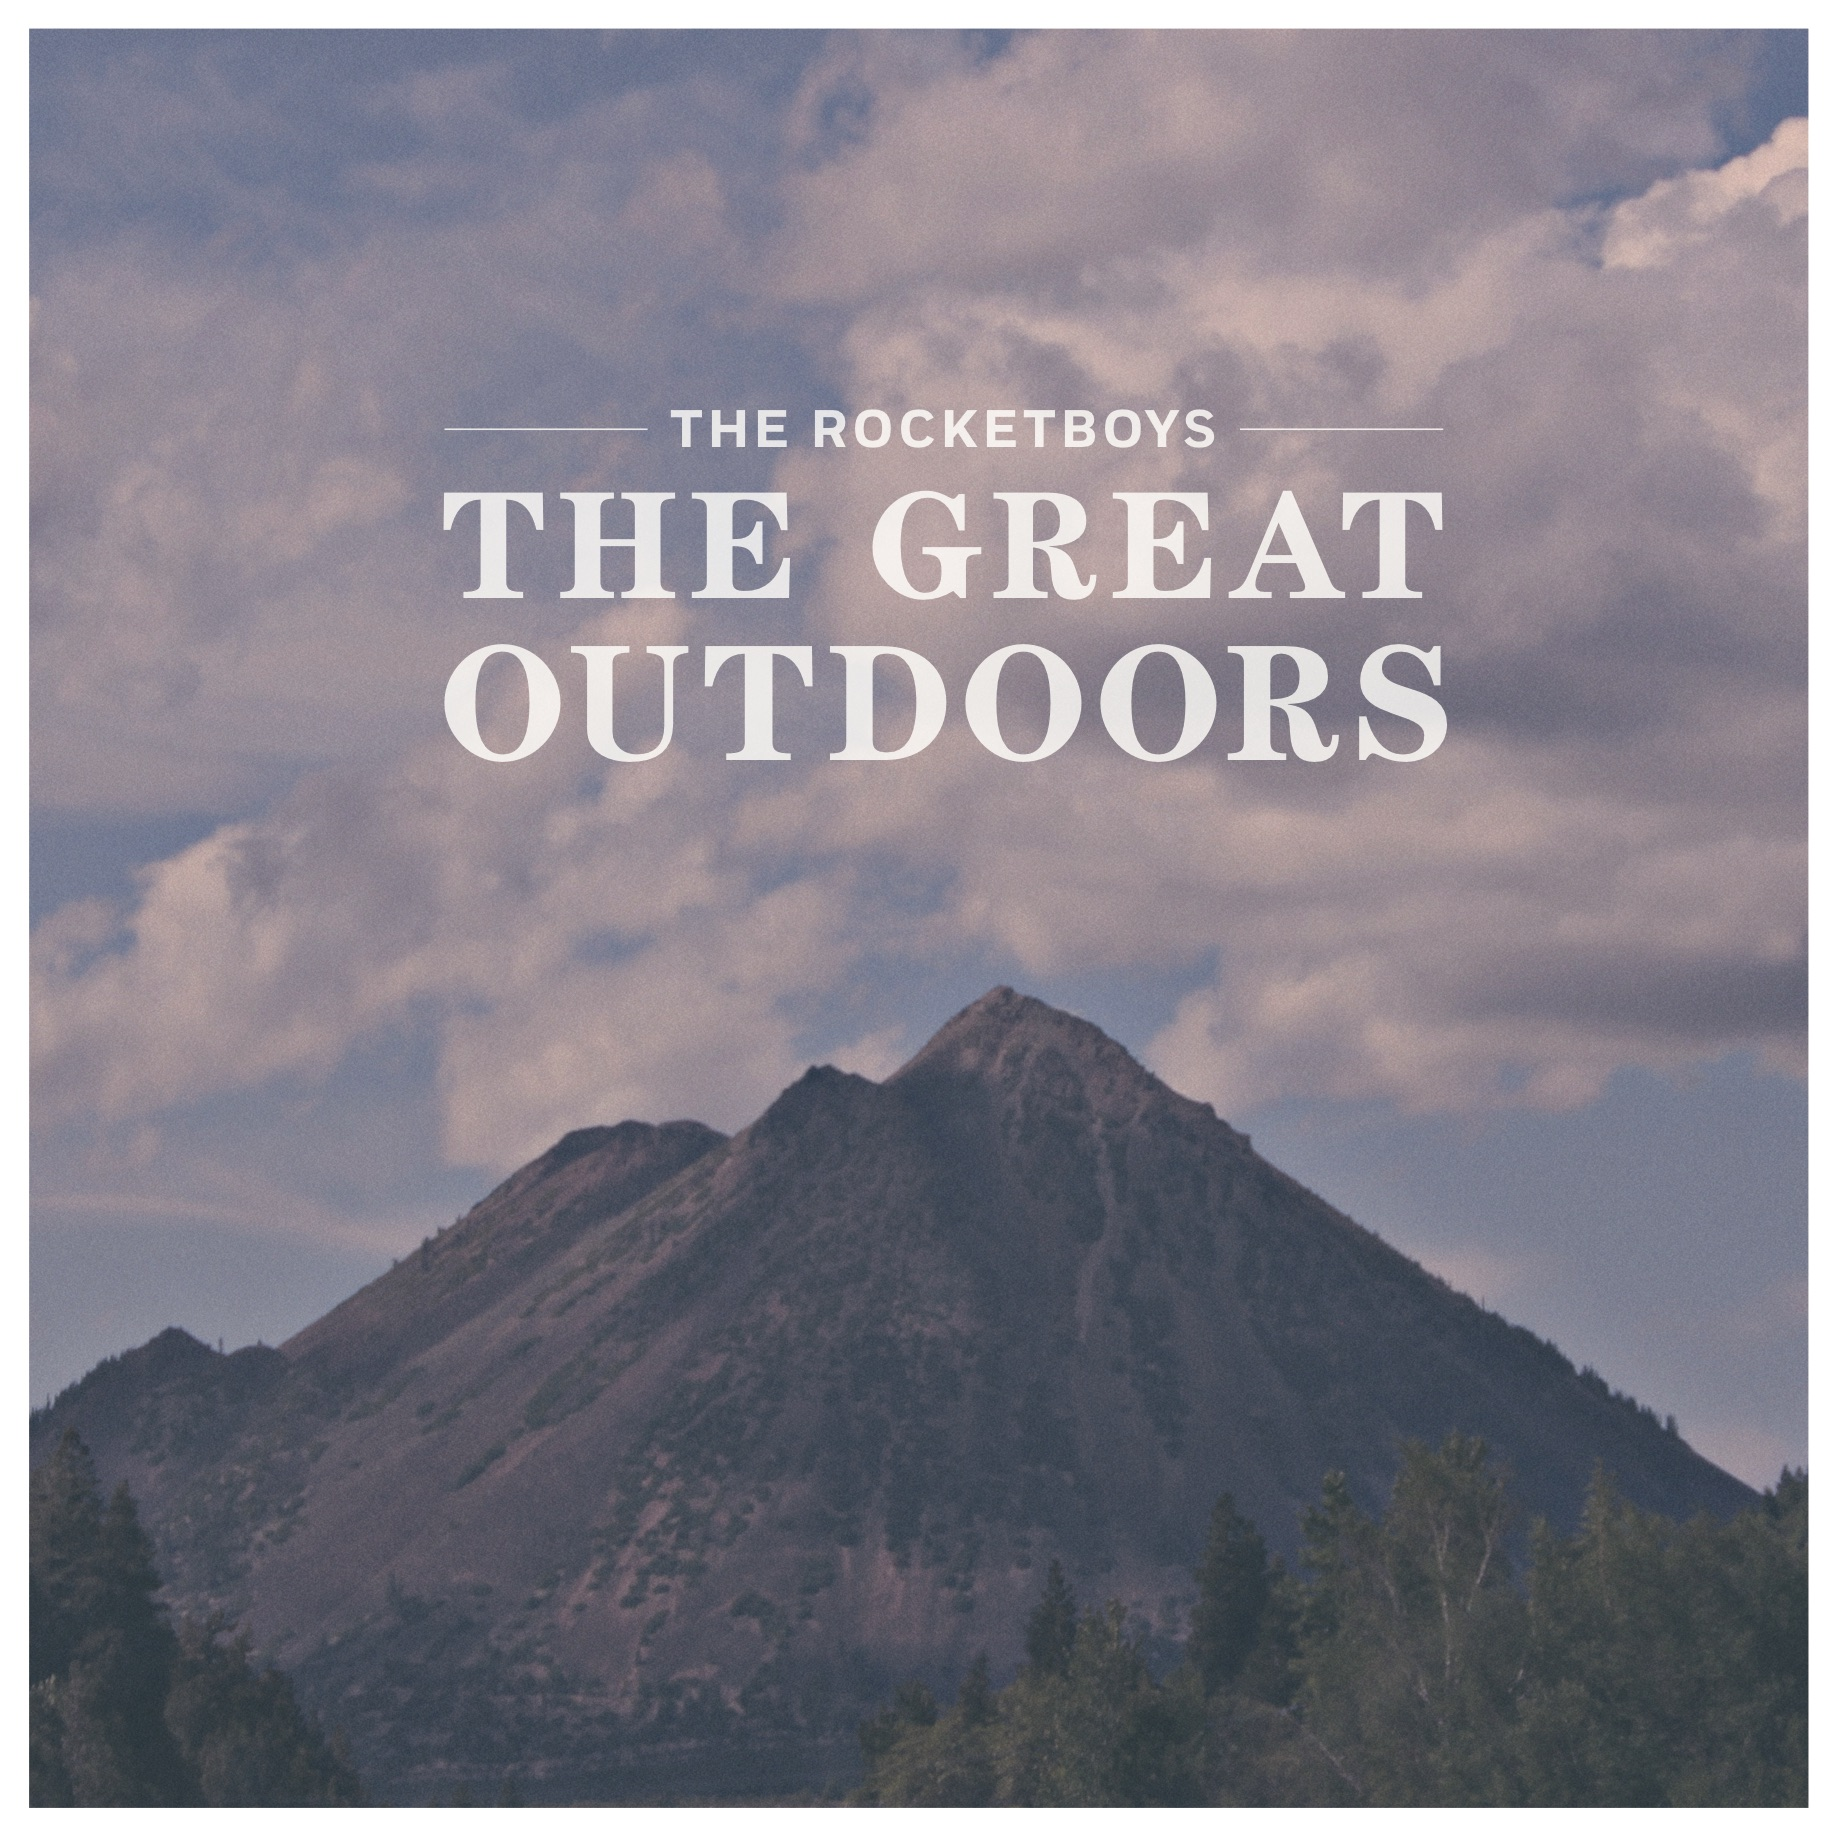 The Great Outdoors | The Rocketboys | A Band from Austin, TX